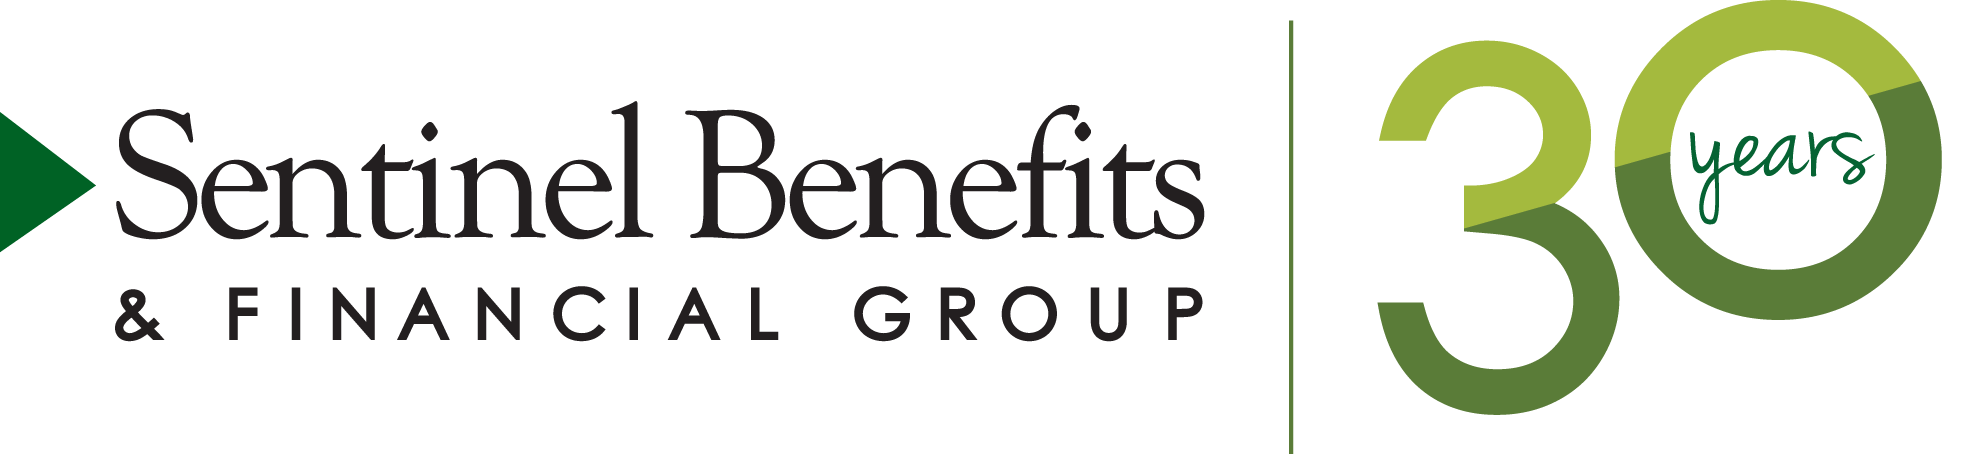 Sentinel Benefits & Financial Group - The employee benefits broker and group health insurance advisor in New York